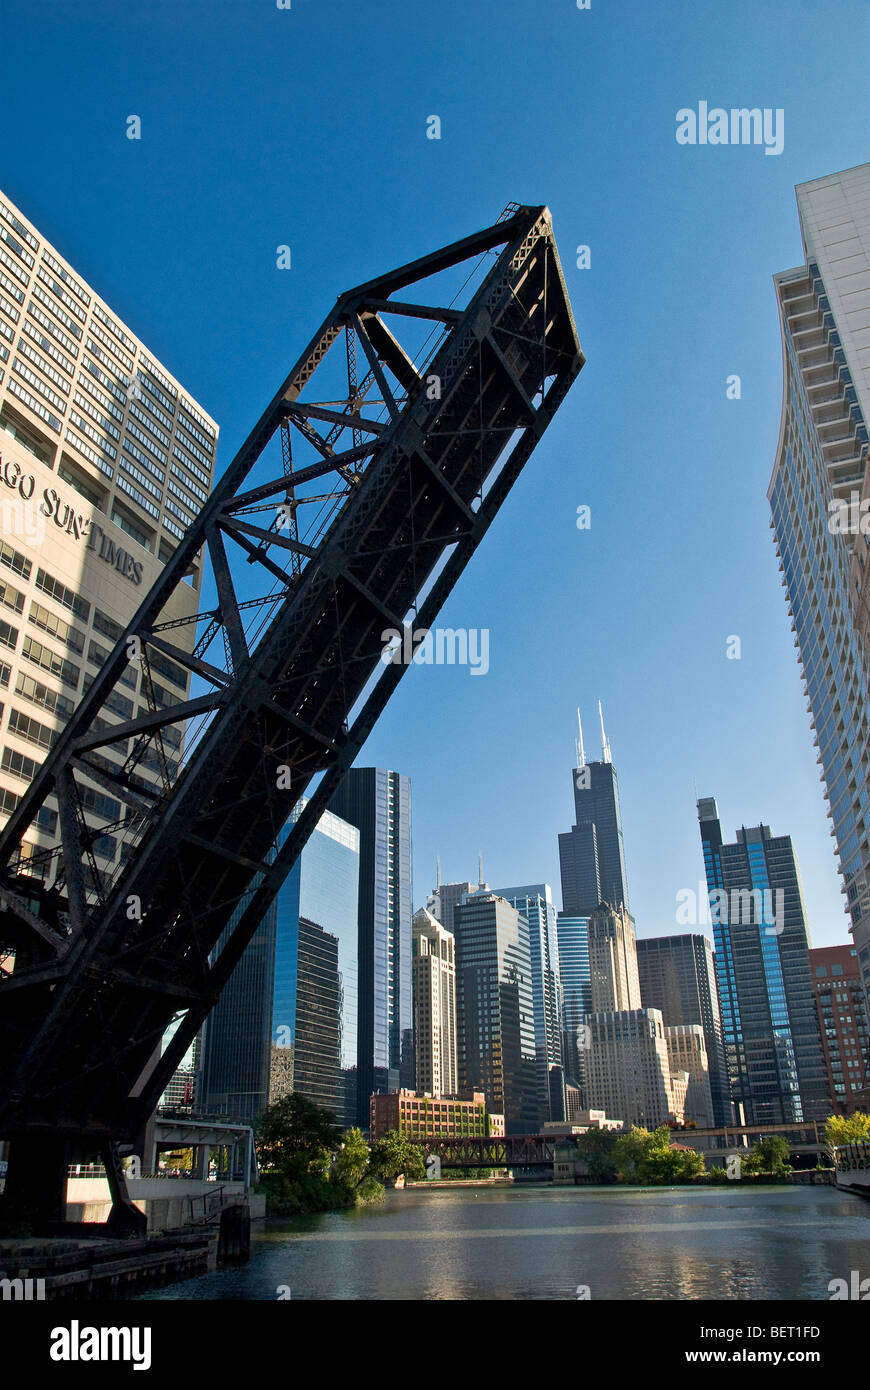 Chicago Drawbridge Stock Photos & Chicago Drawbridge Stock Images ...